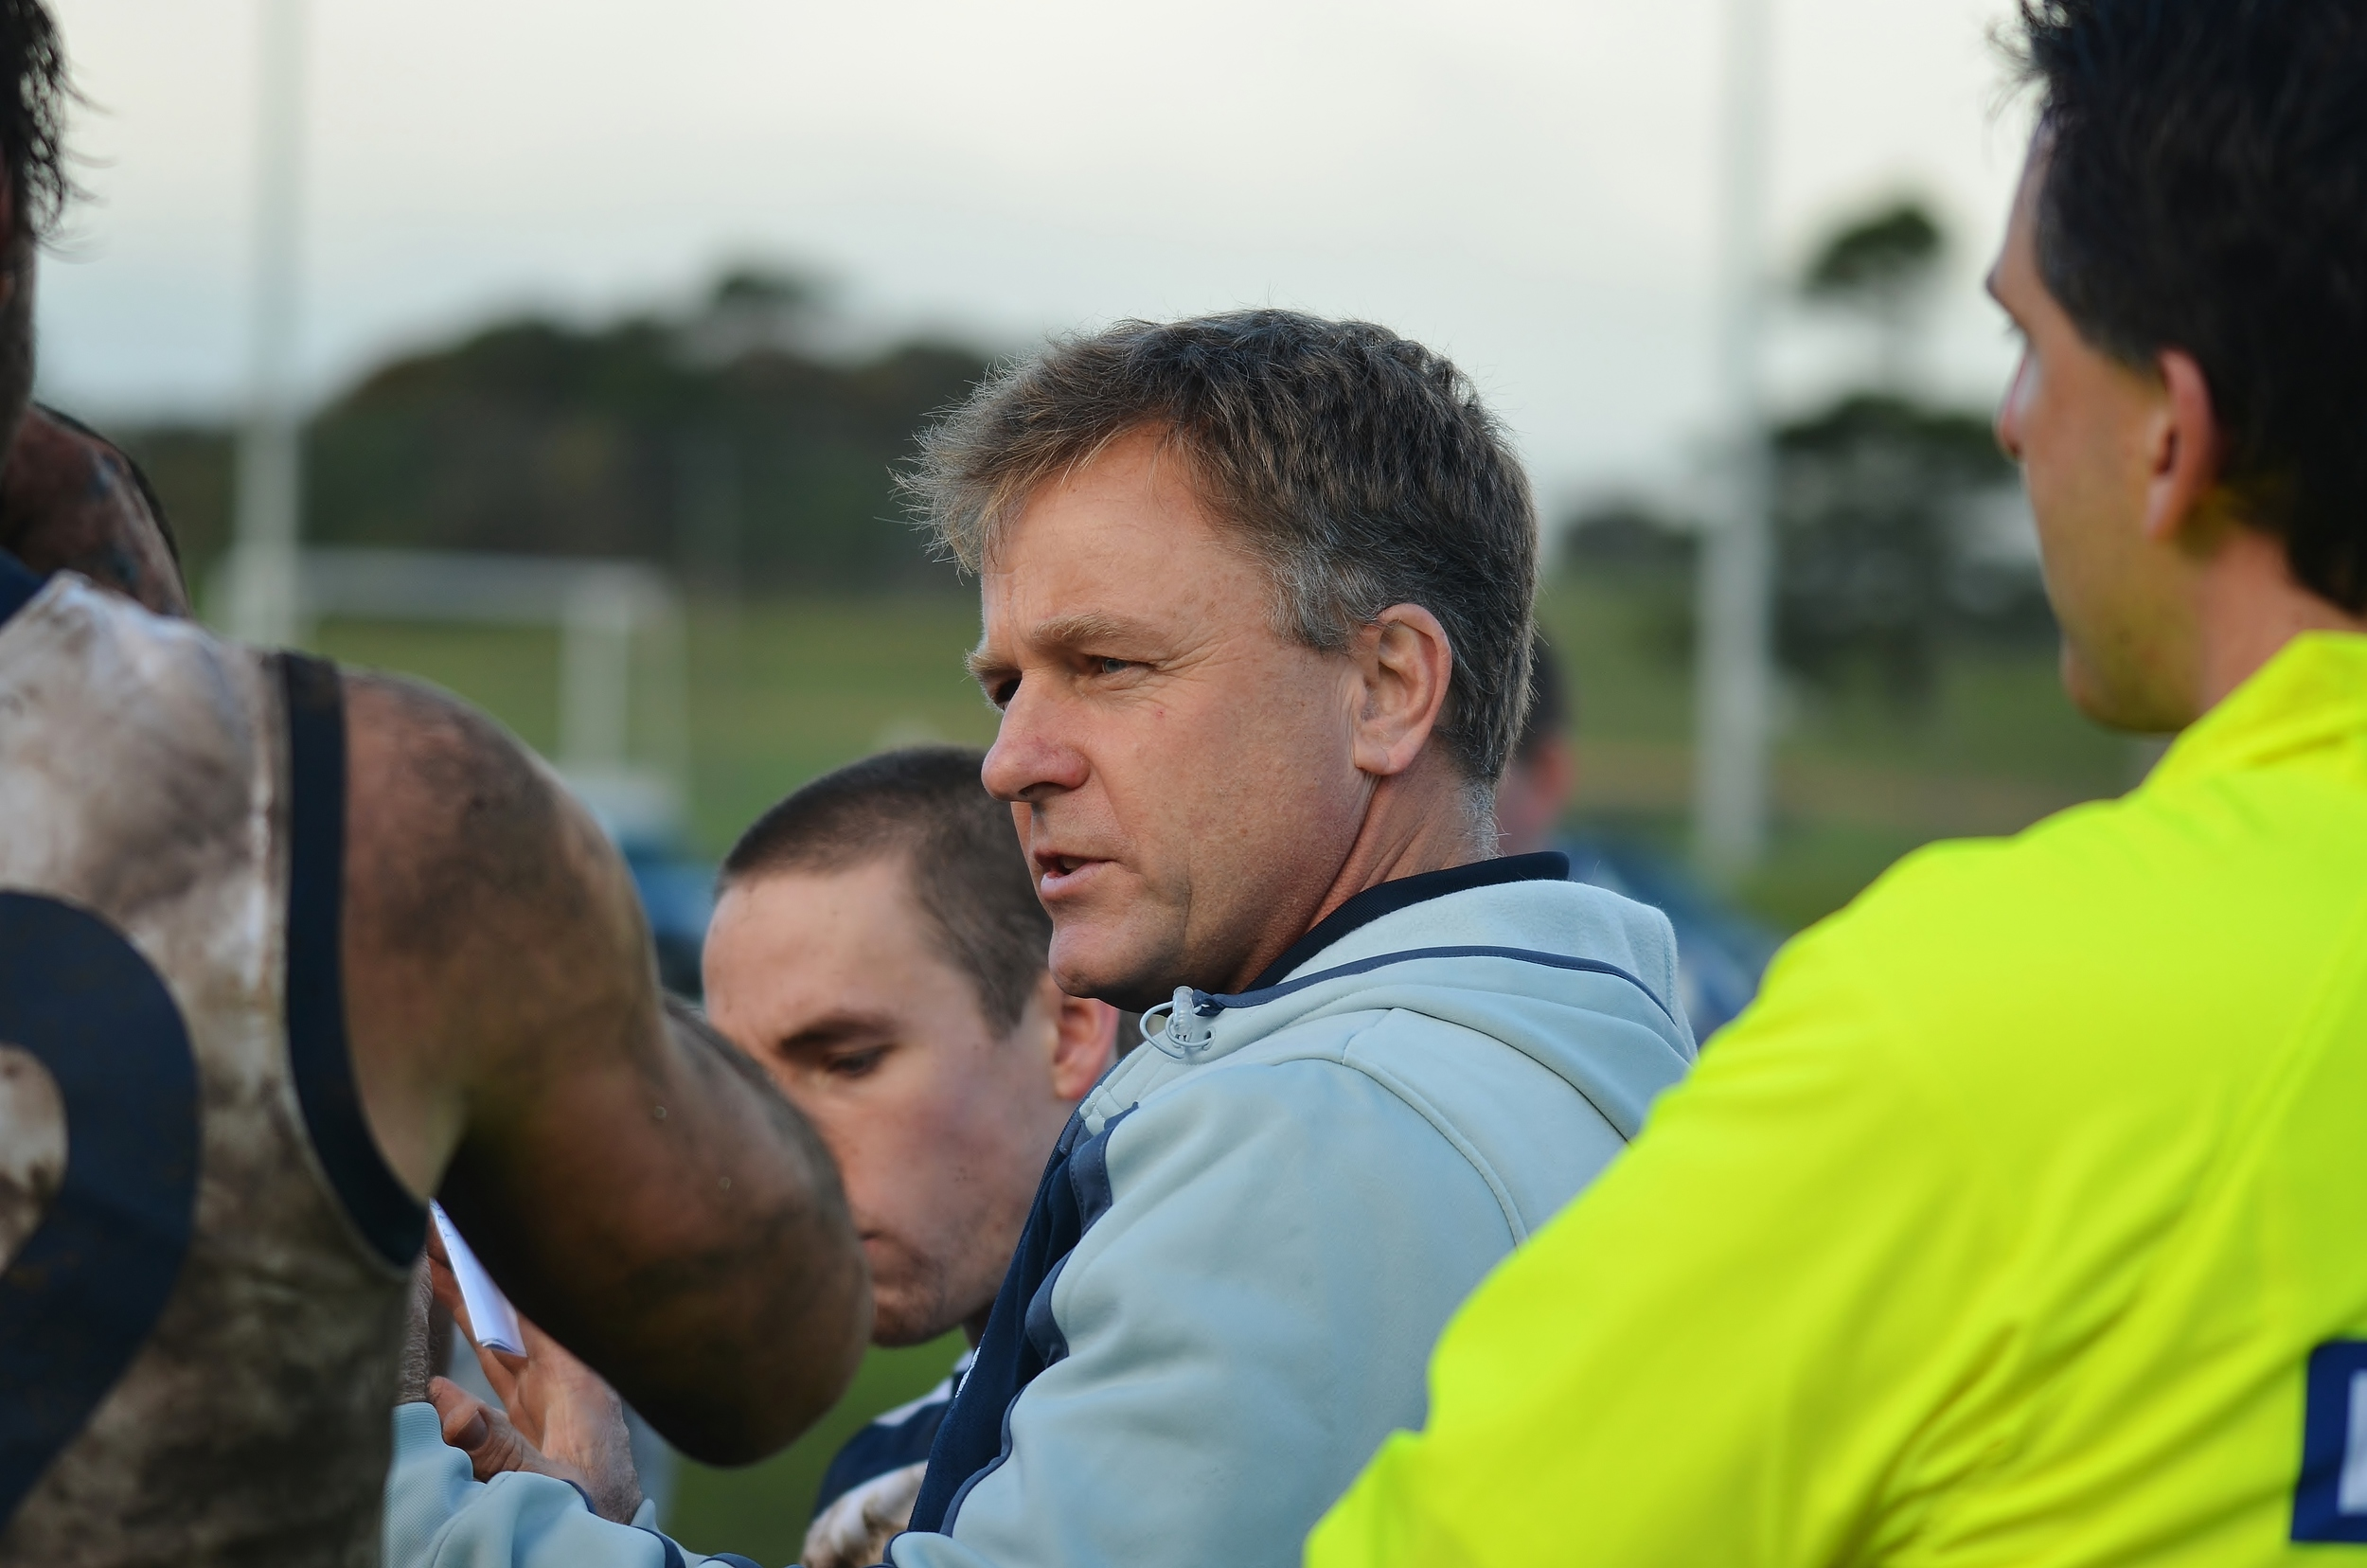 Ron Watt has a word with some muddy players after an intense training session. Watt's approach to coaching has seen the AFLCA reach out to other codesin order to improve Australia's favourite sport. Image supplied by Arj Giese